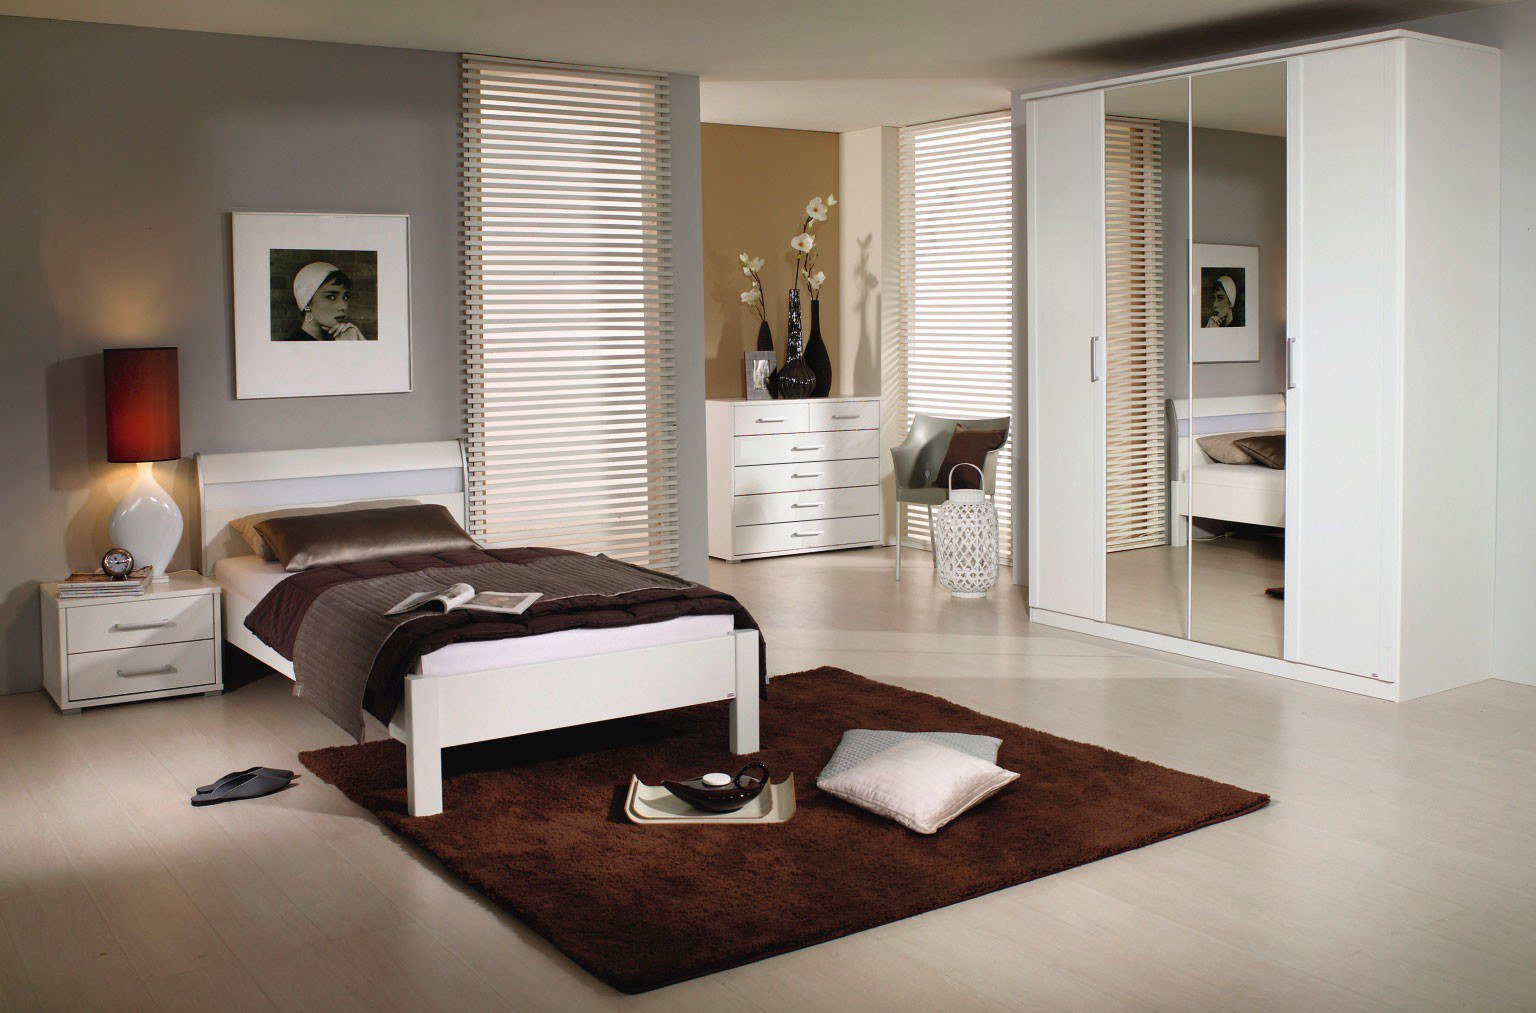 rauch annecy schlafzimmer set 3 teilig m bel letz ihr. Black Bedroom Furniture Sets. Home Design Ideas